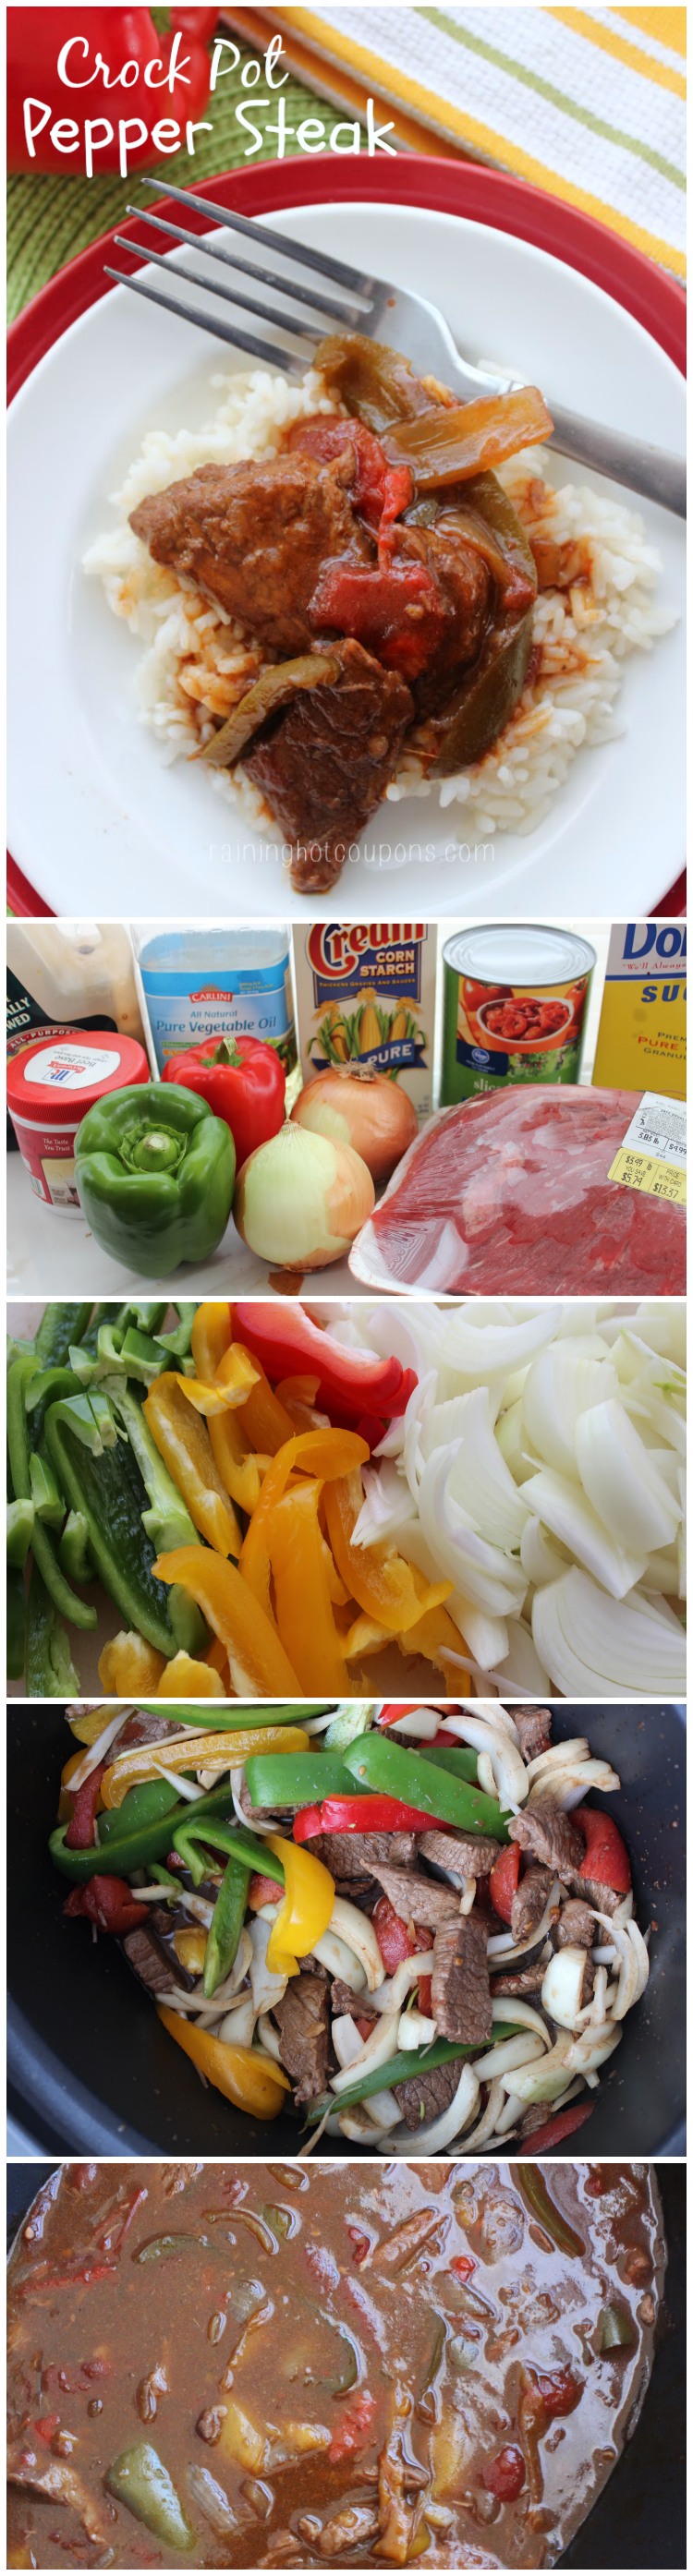 crock pot pepper steak collage